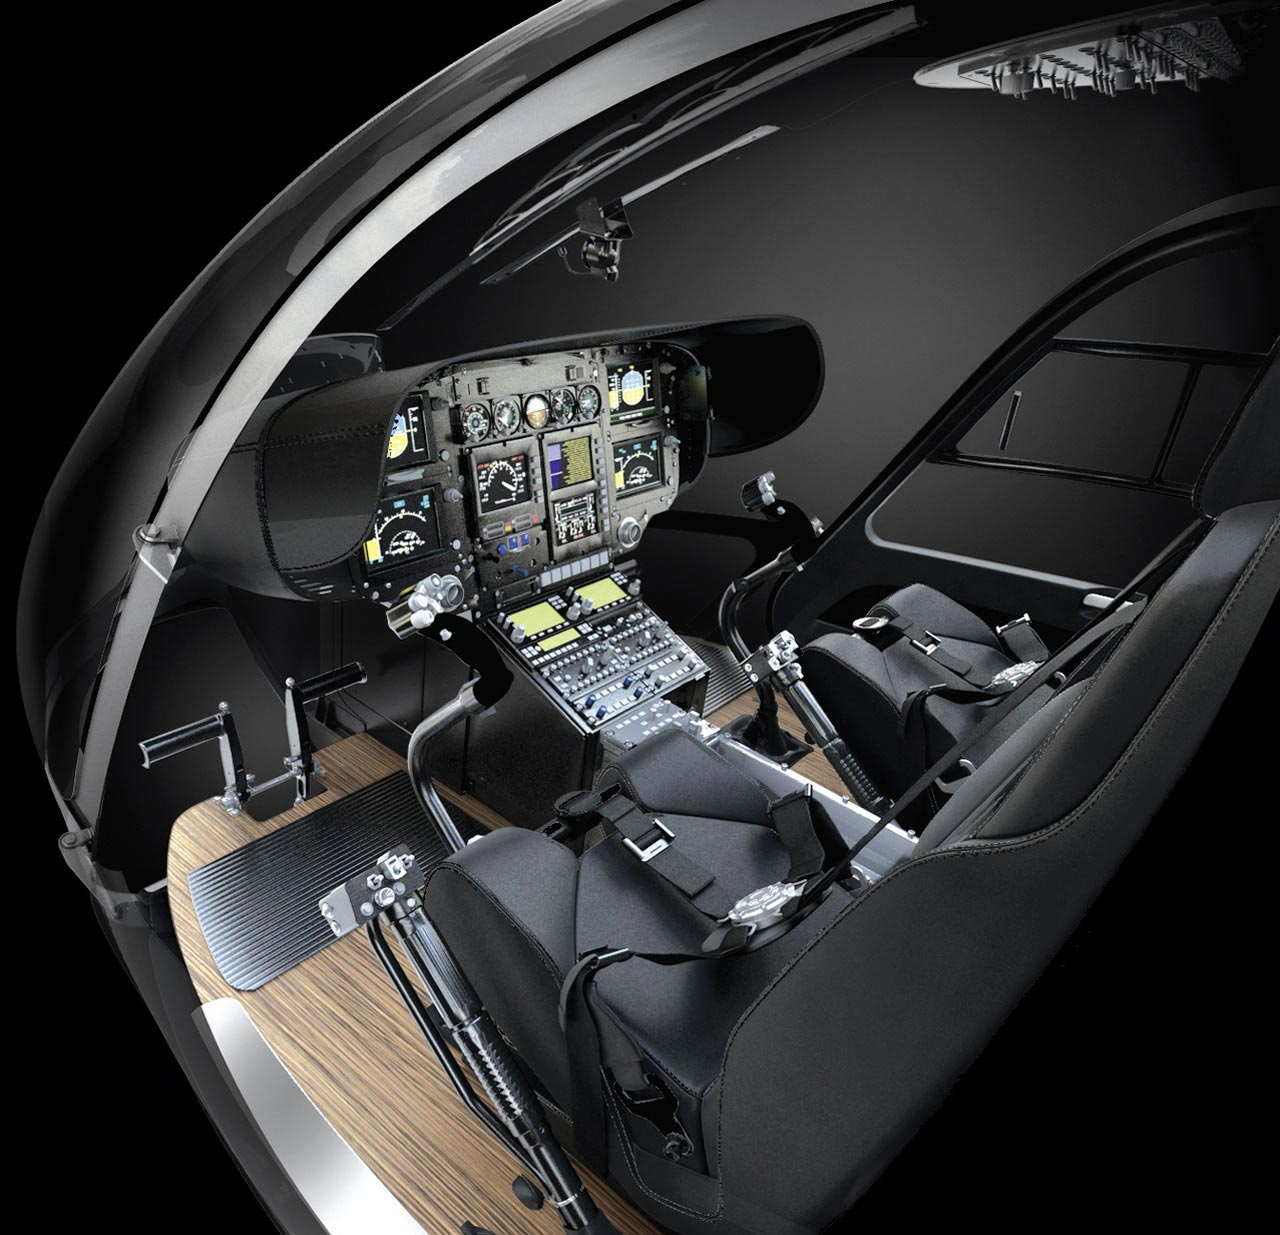 Fly in style eurocopter ec145 mercedes benz style for Mercedes benz helicopter price